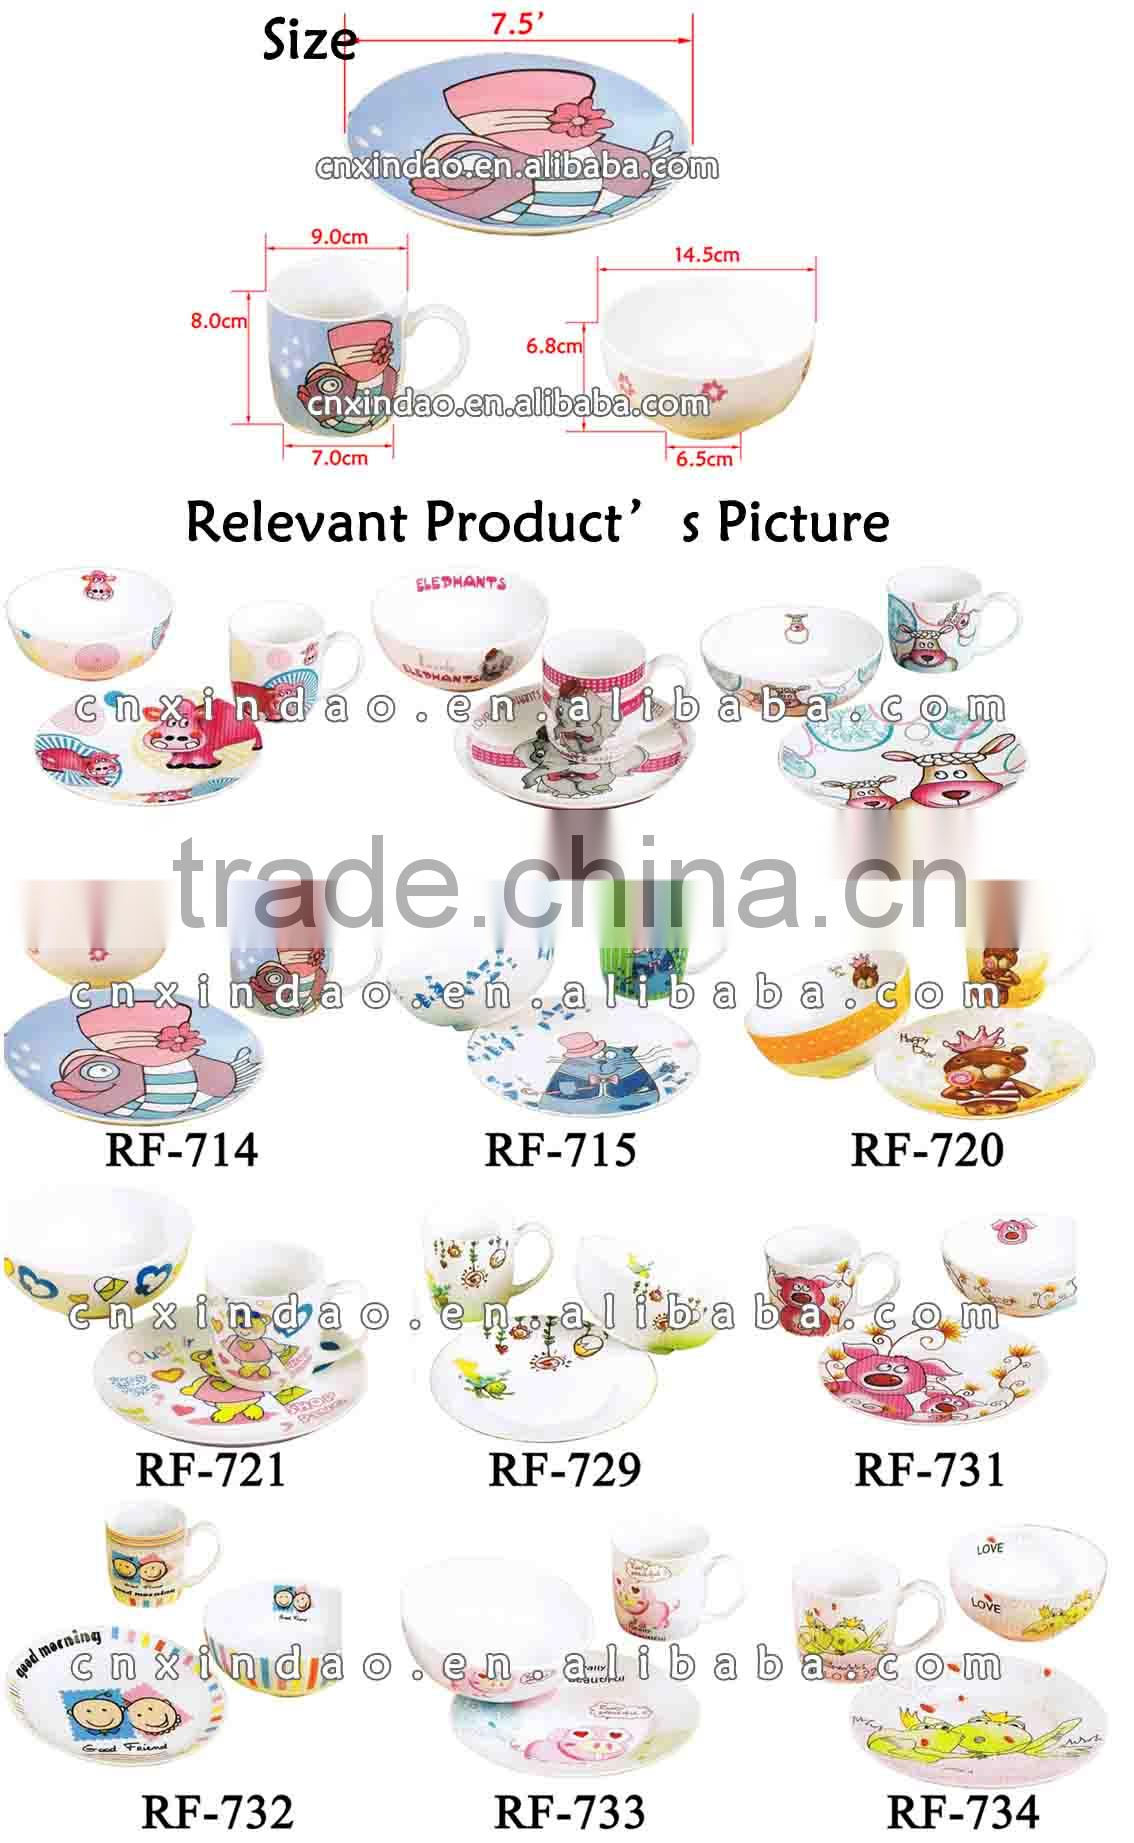 Wholesale 3pcs White Porcelain Kids Dinnerware Set for Promotion Gift